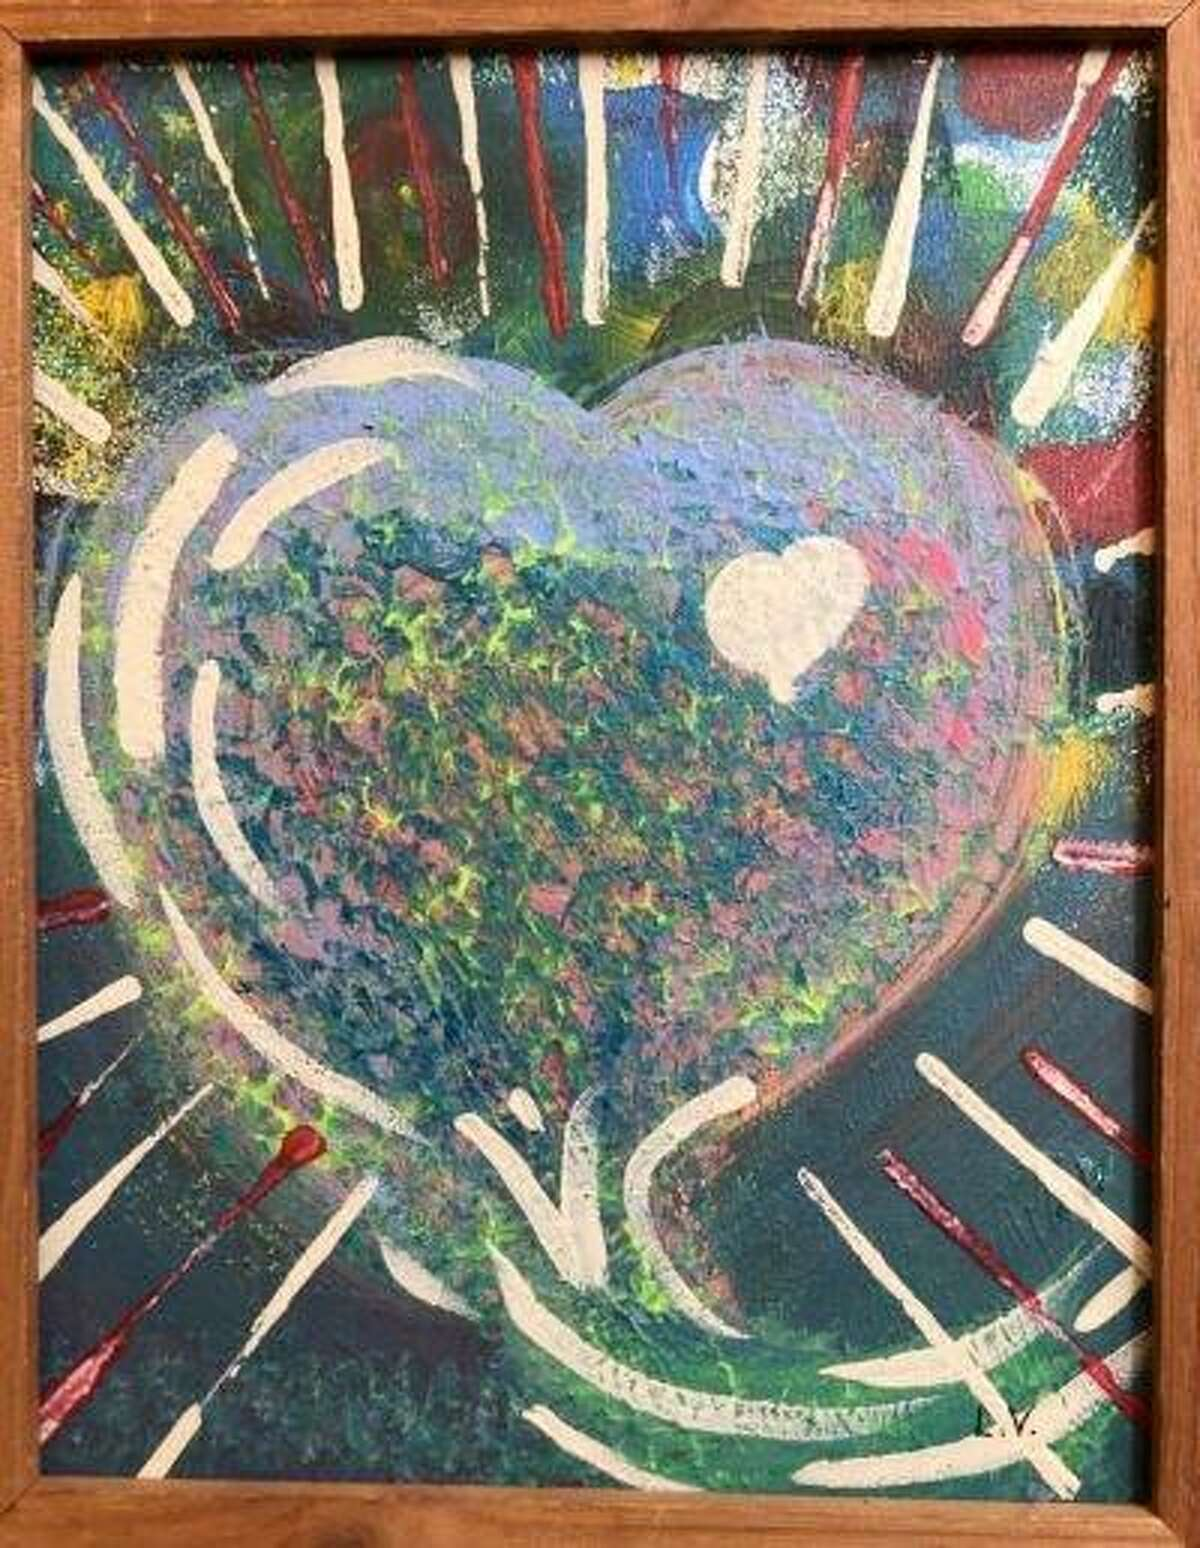 The Buttonwood Tree has announced its programs and events for January ,which include an art show,